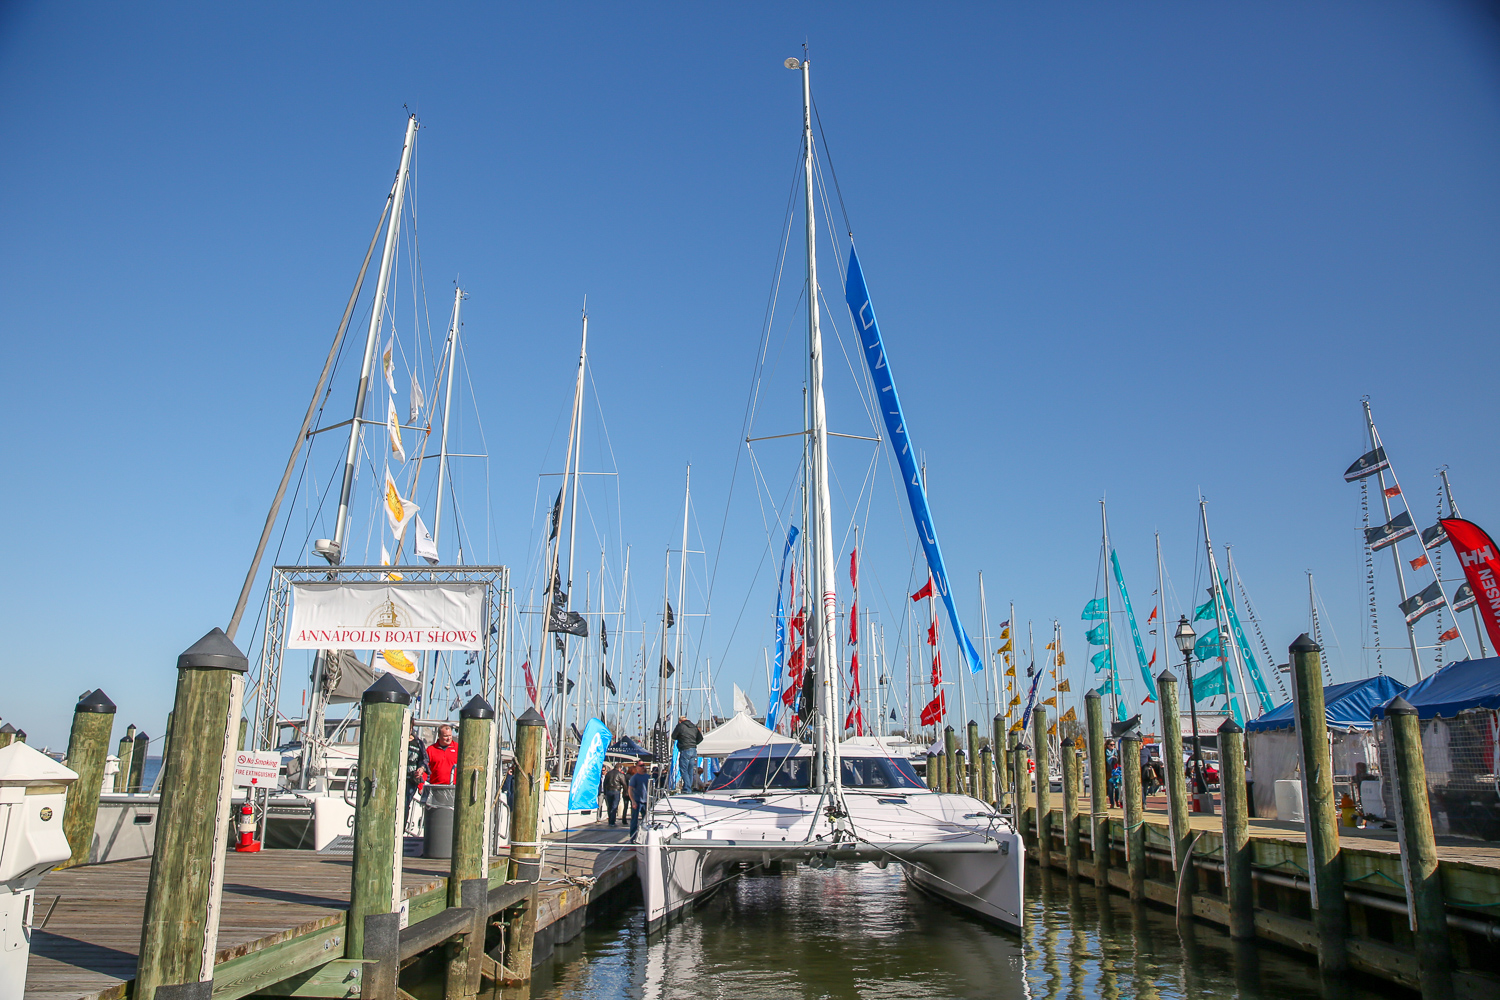 The Annapolis harbor is looking pretty full for their annual spring boat show. The exhibition gives visitors the chance to check out yachts and sailing boats. Although many of the boats are for sale, even those of us who can't exactly afford a luxury yacht can enjoy walking the decks. The show opens April 20 and will run through the weekend.{ } (Amanda Andrade-Rhoades/DC Refined)